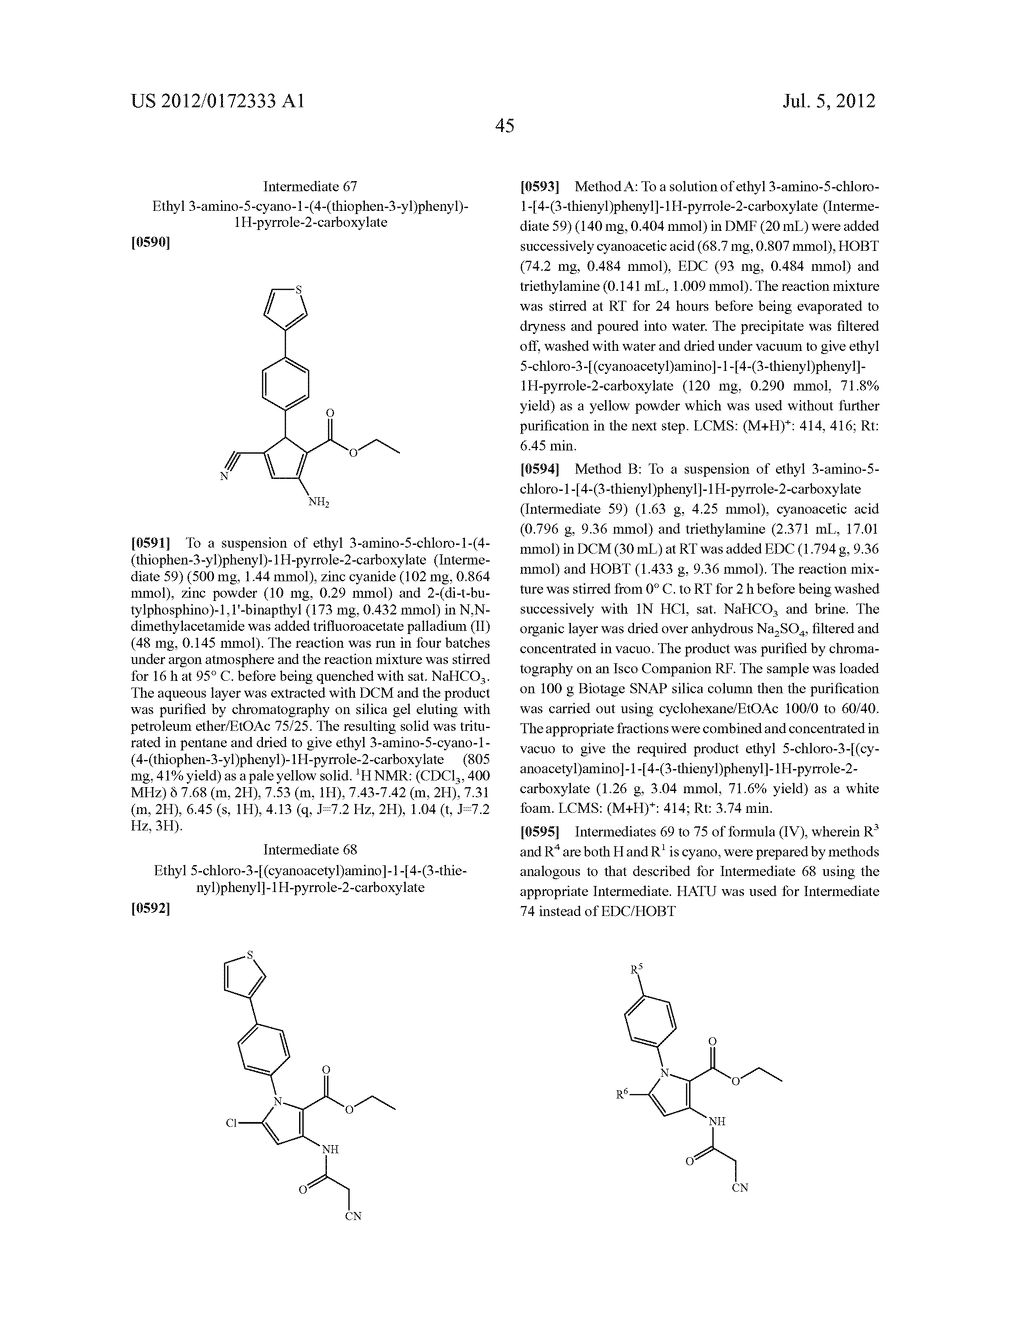 PYRROLO-PYRIDINE DERIVATIVES AS ACTIVATORS OF AMPK - diagram, schematic, and image 46